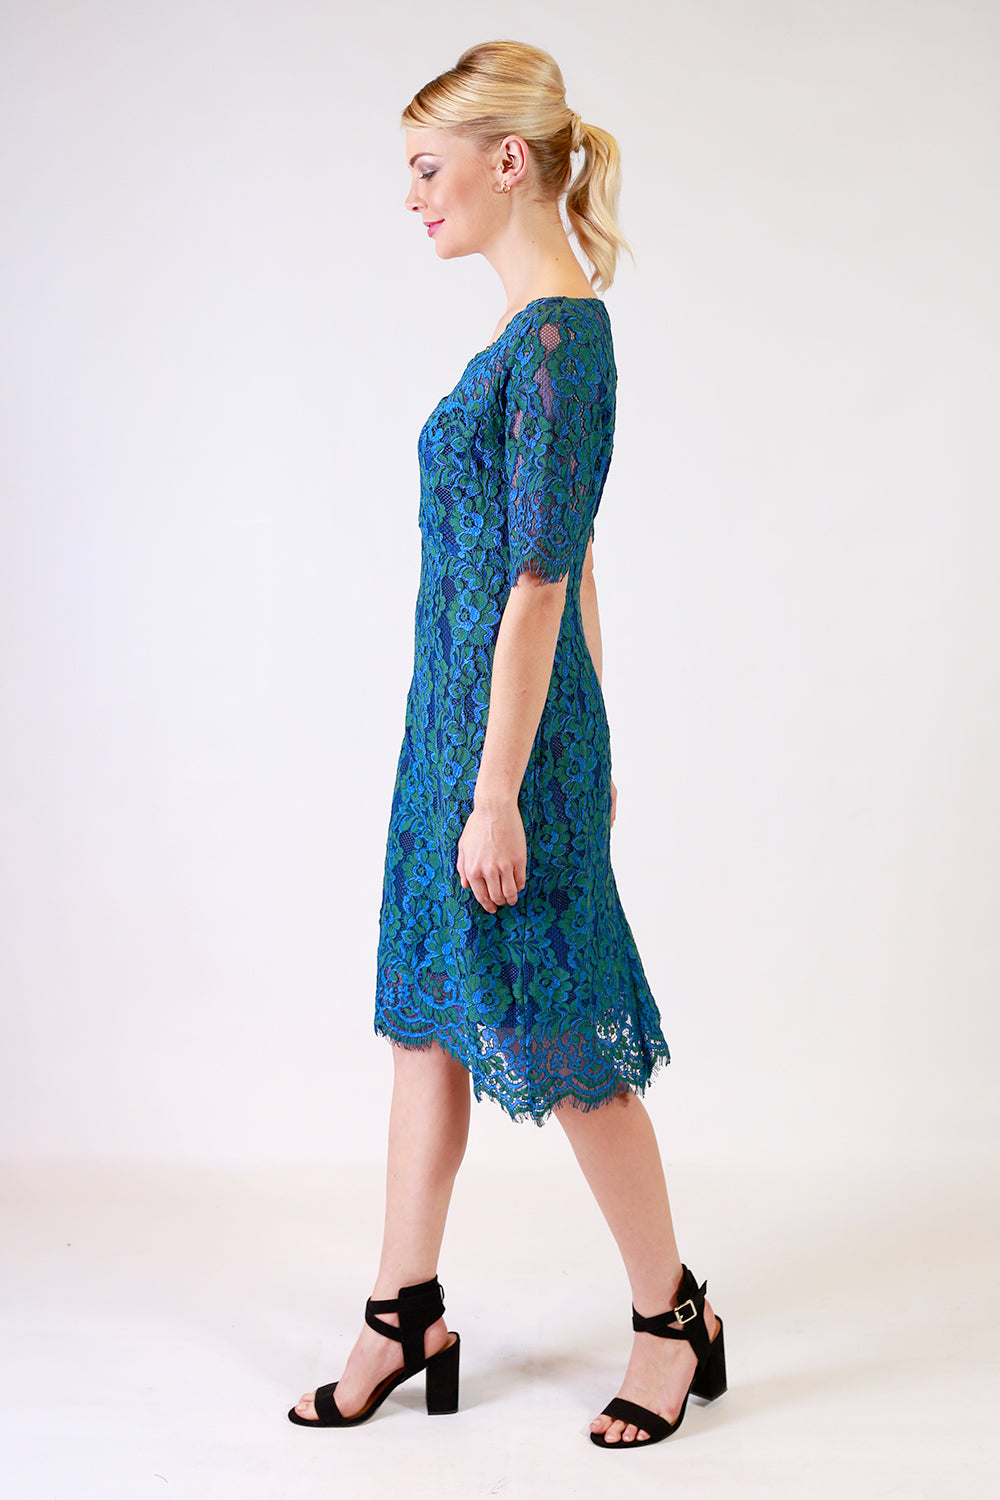 Chenille Sharne Dress | Occasion Dresses | Lace Dresses | Fashion Design | Annah Stretton | New Zealand Fashion Designer